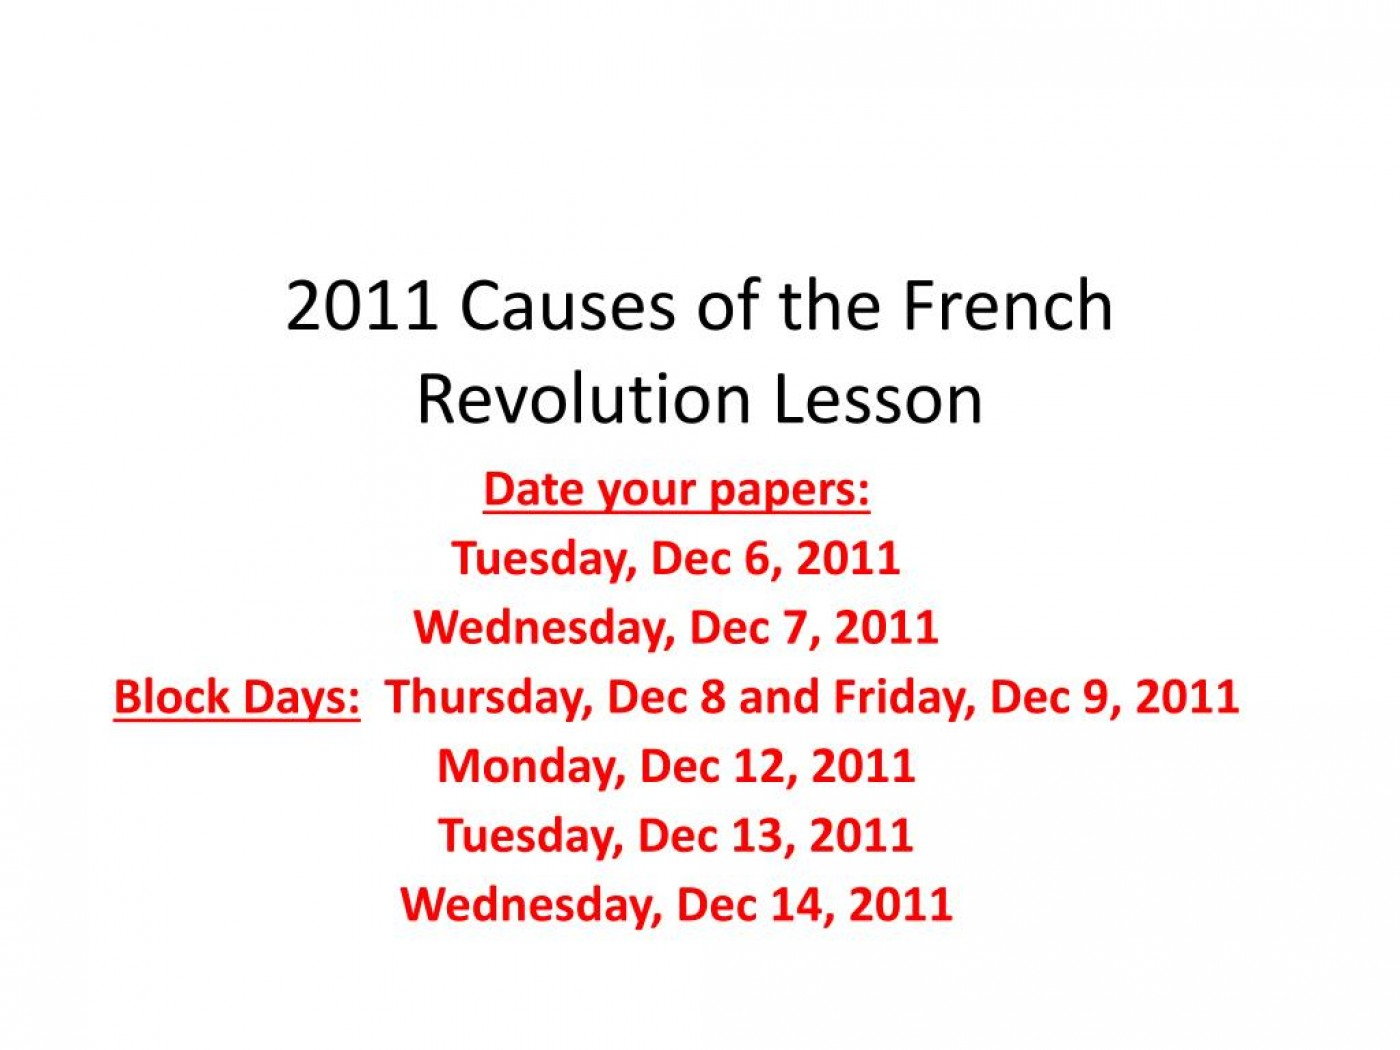 009 Causes Of The French Revolution Essay Exampleesson Best Conclusion Economic Introduction 1400